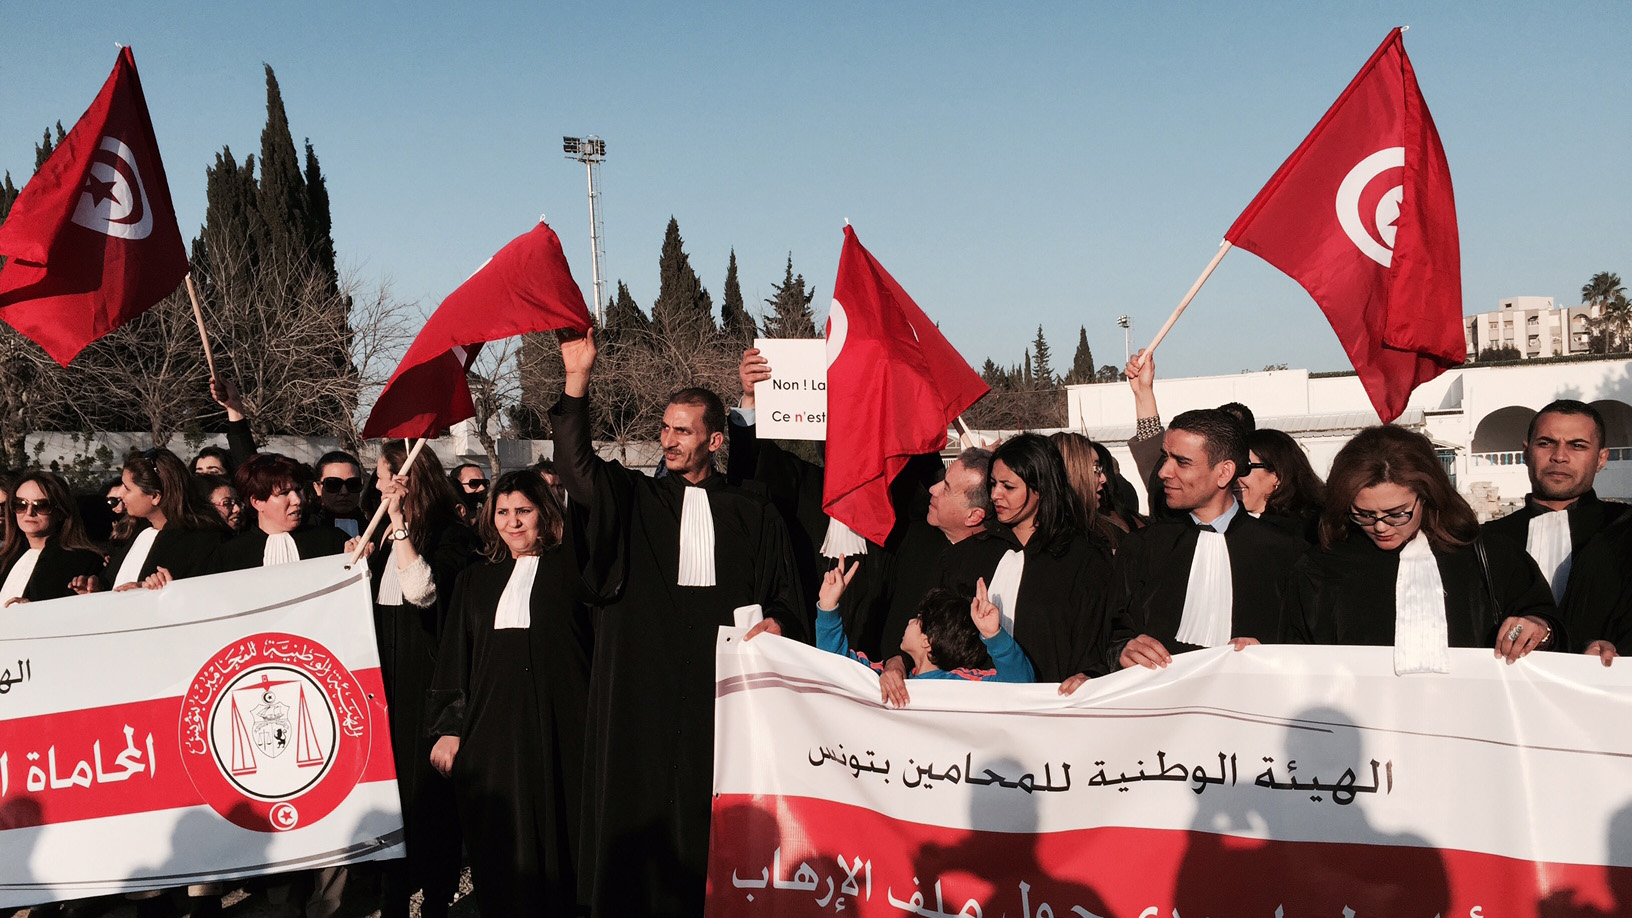 Lawyers at a protest in Tunis against extremism on March 19, 2015, a day after gunmen killed more than 20 people in the Tunisian capital.